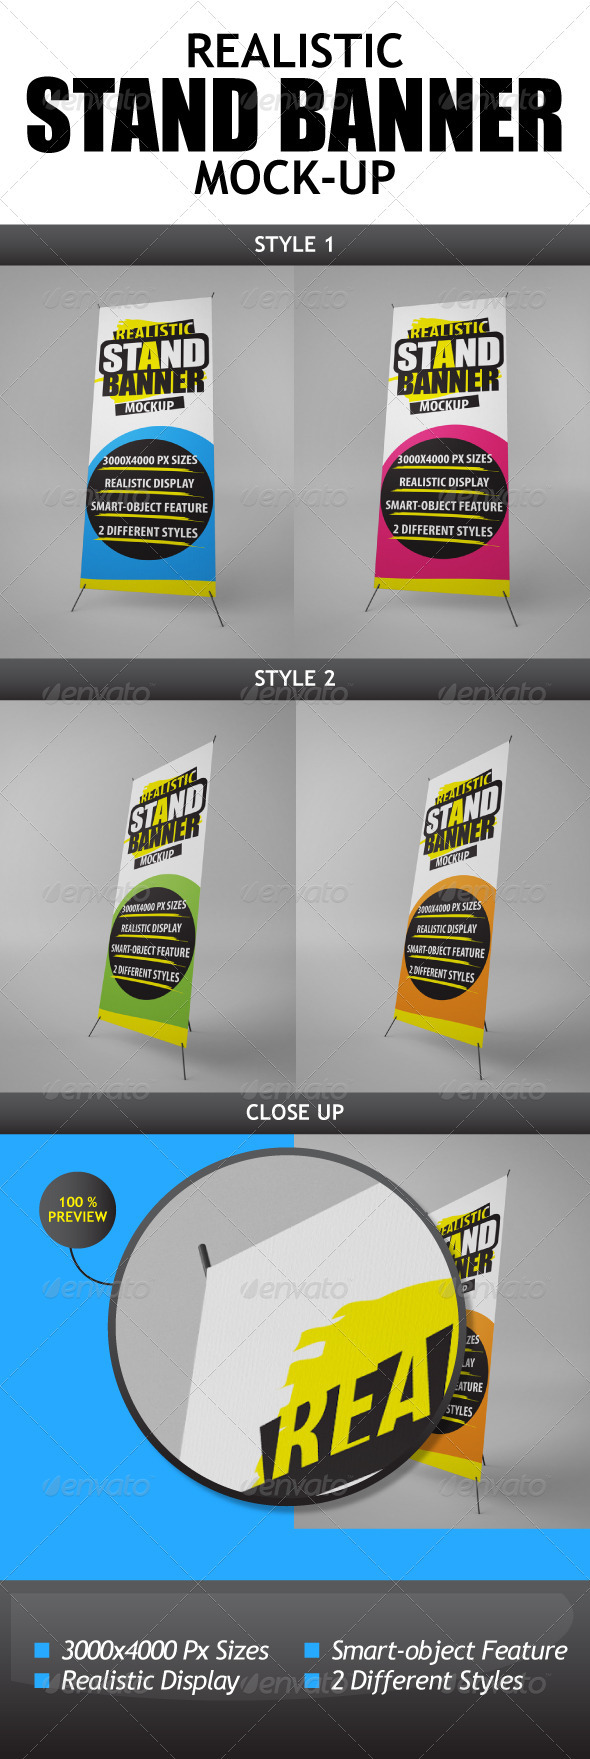 Realistic Stand Banner Display Mock-Up - Signage Print